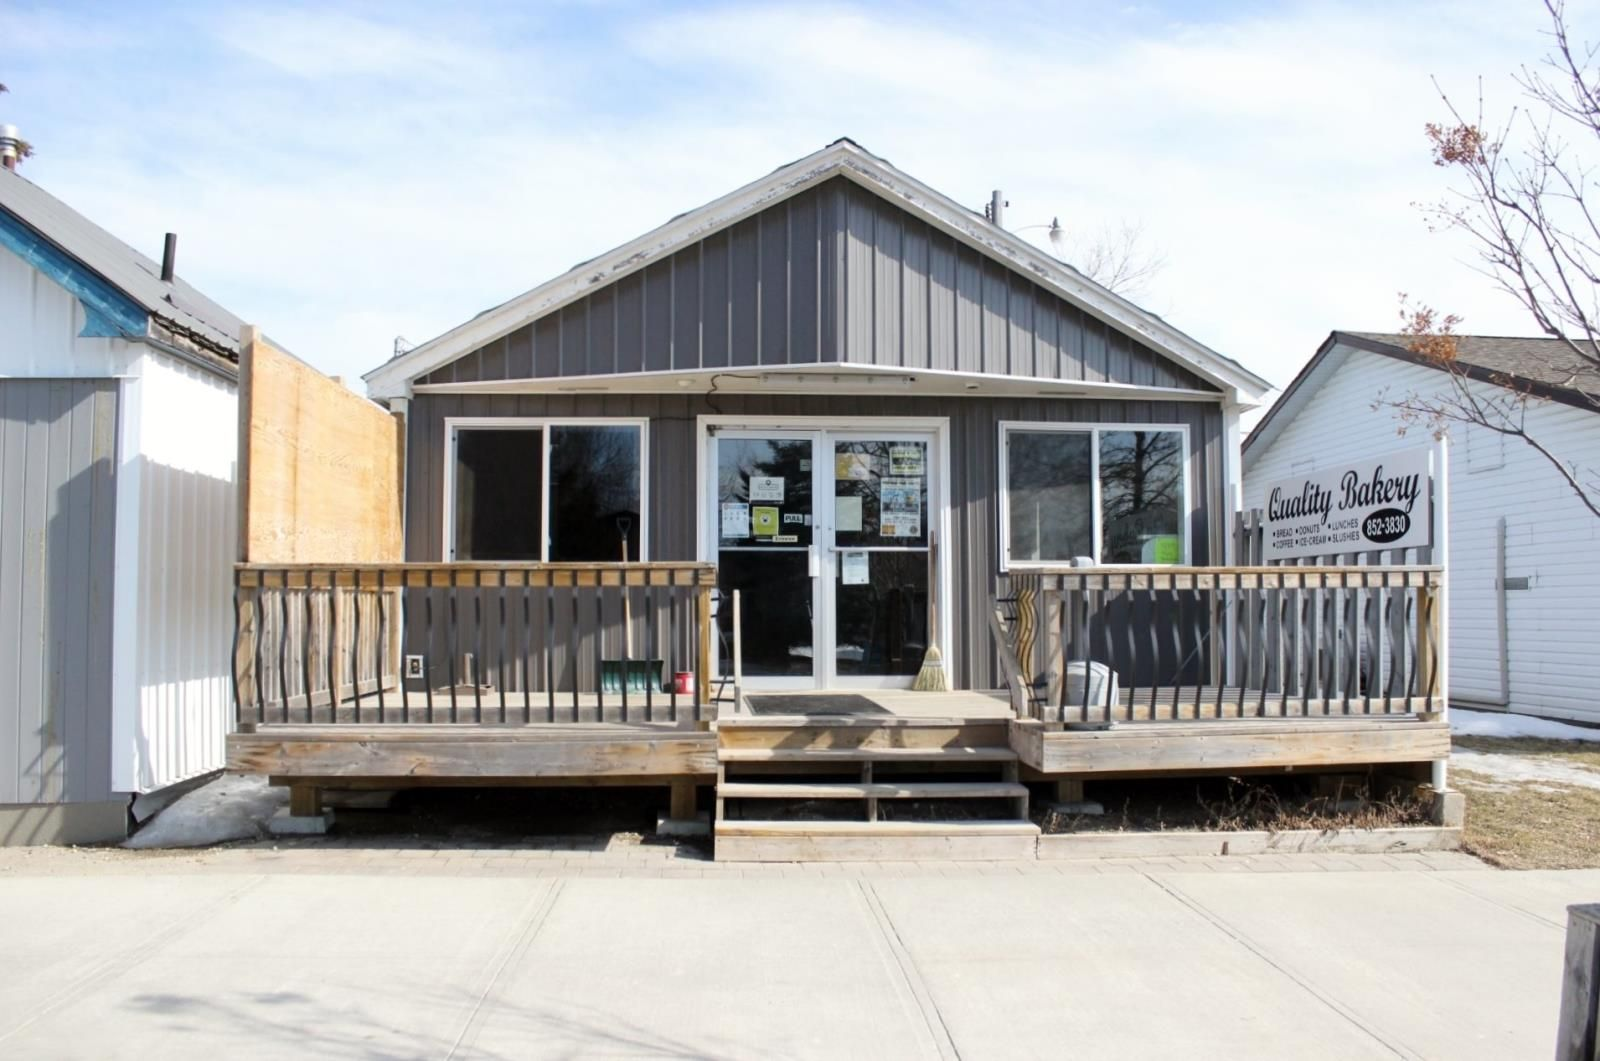 Main Photo: 214 FOURTH ST in RAINY RIVER: Multi-family for sale : MLS®# TB210605